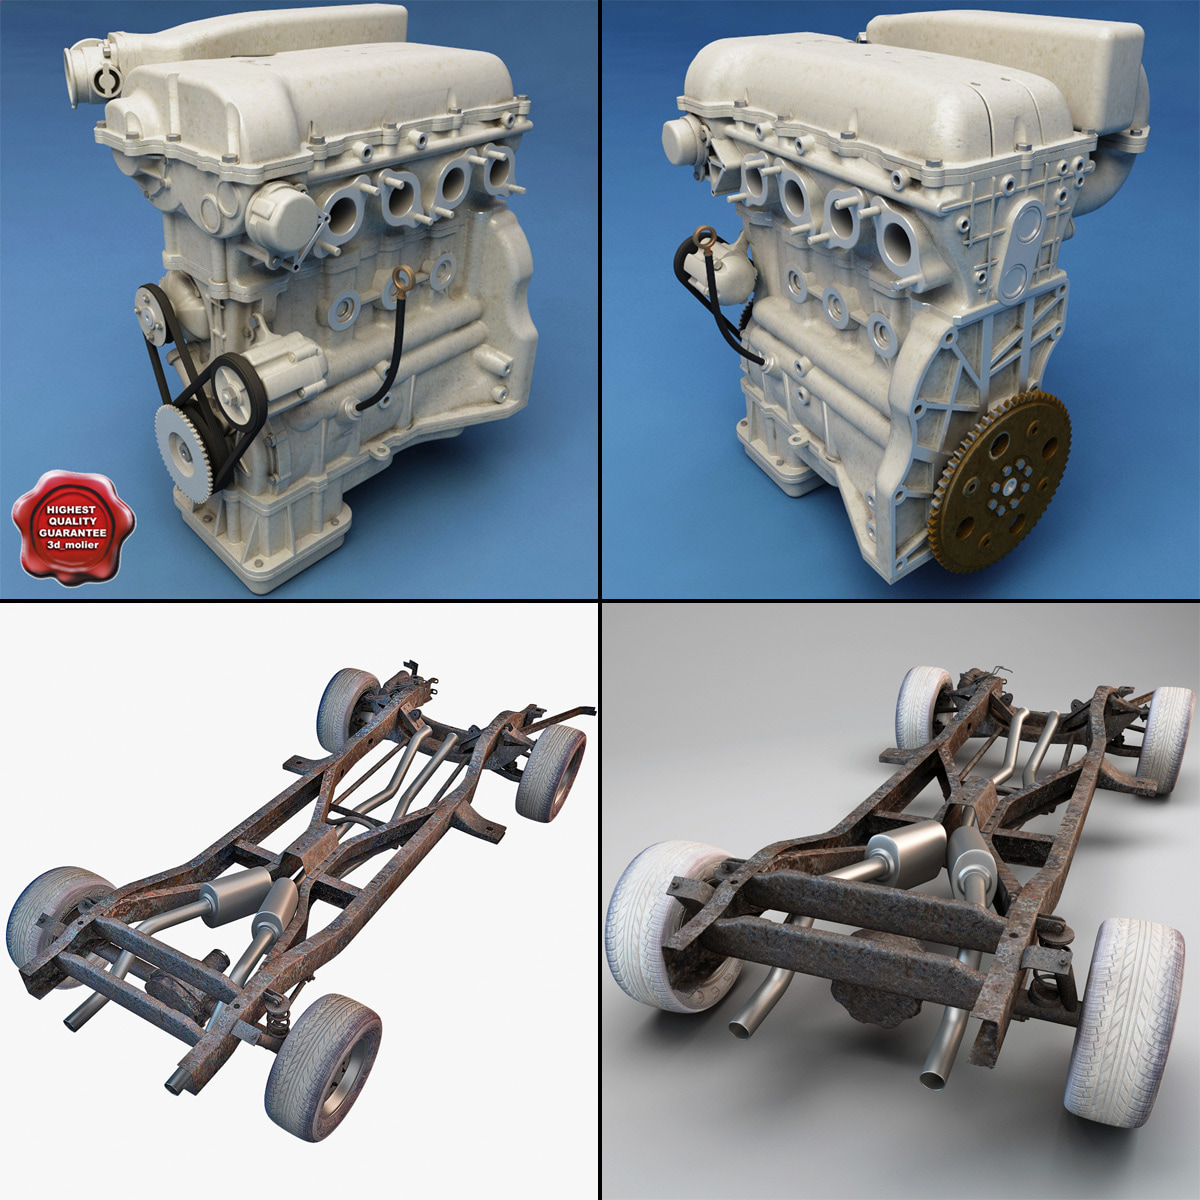 Car_Chassis_and_Engine_000.jpg